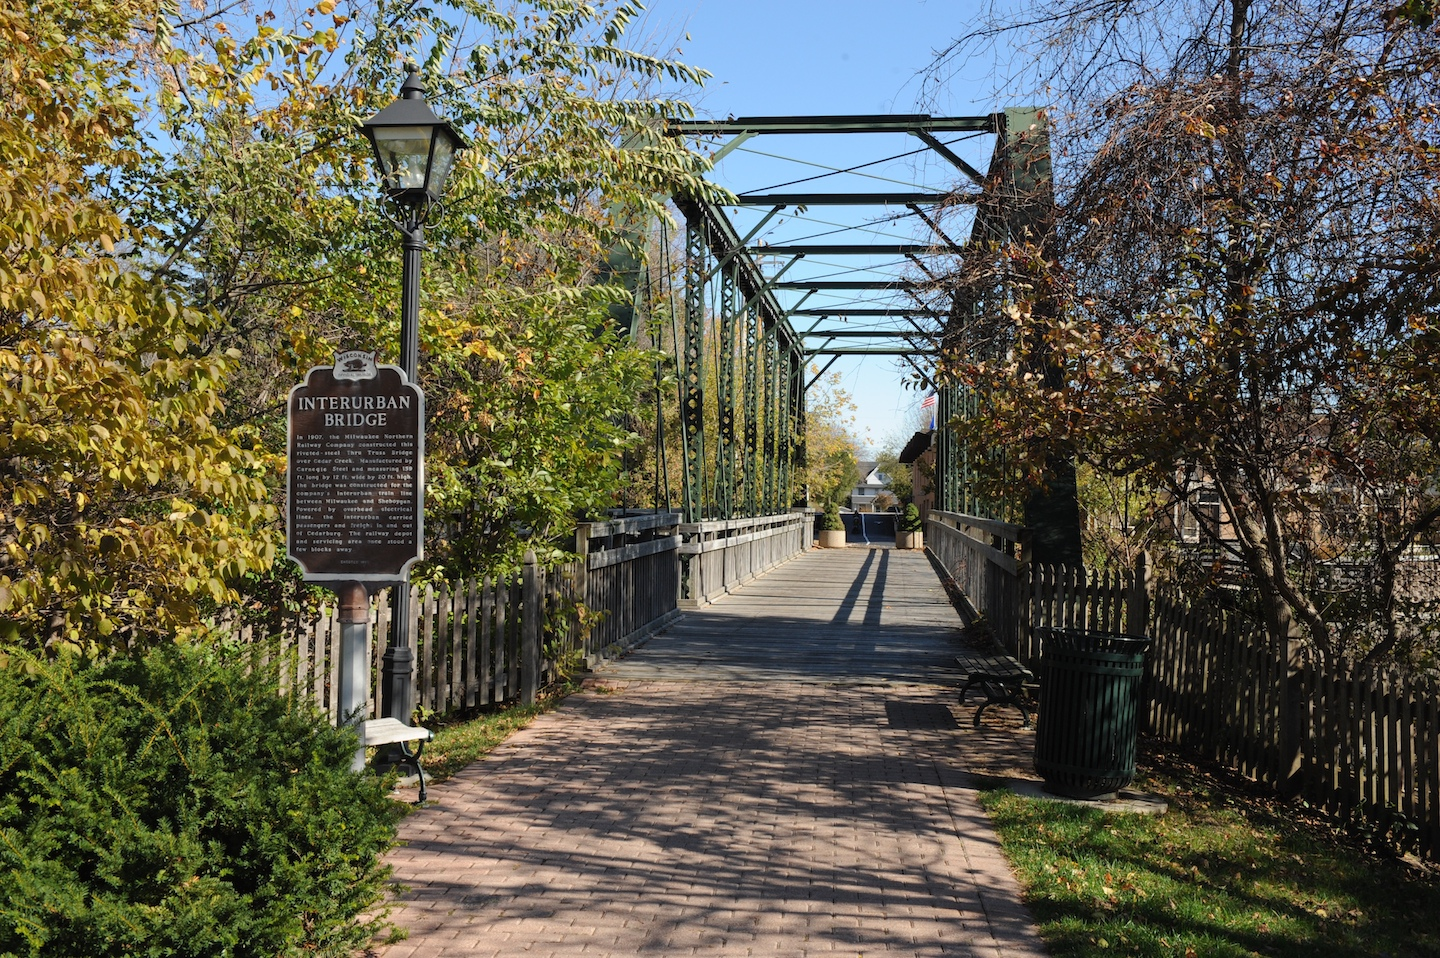 Bridge_Photo courtesy Cedarburg Chamber of Commerce copy.jpg